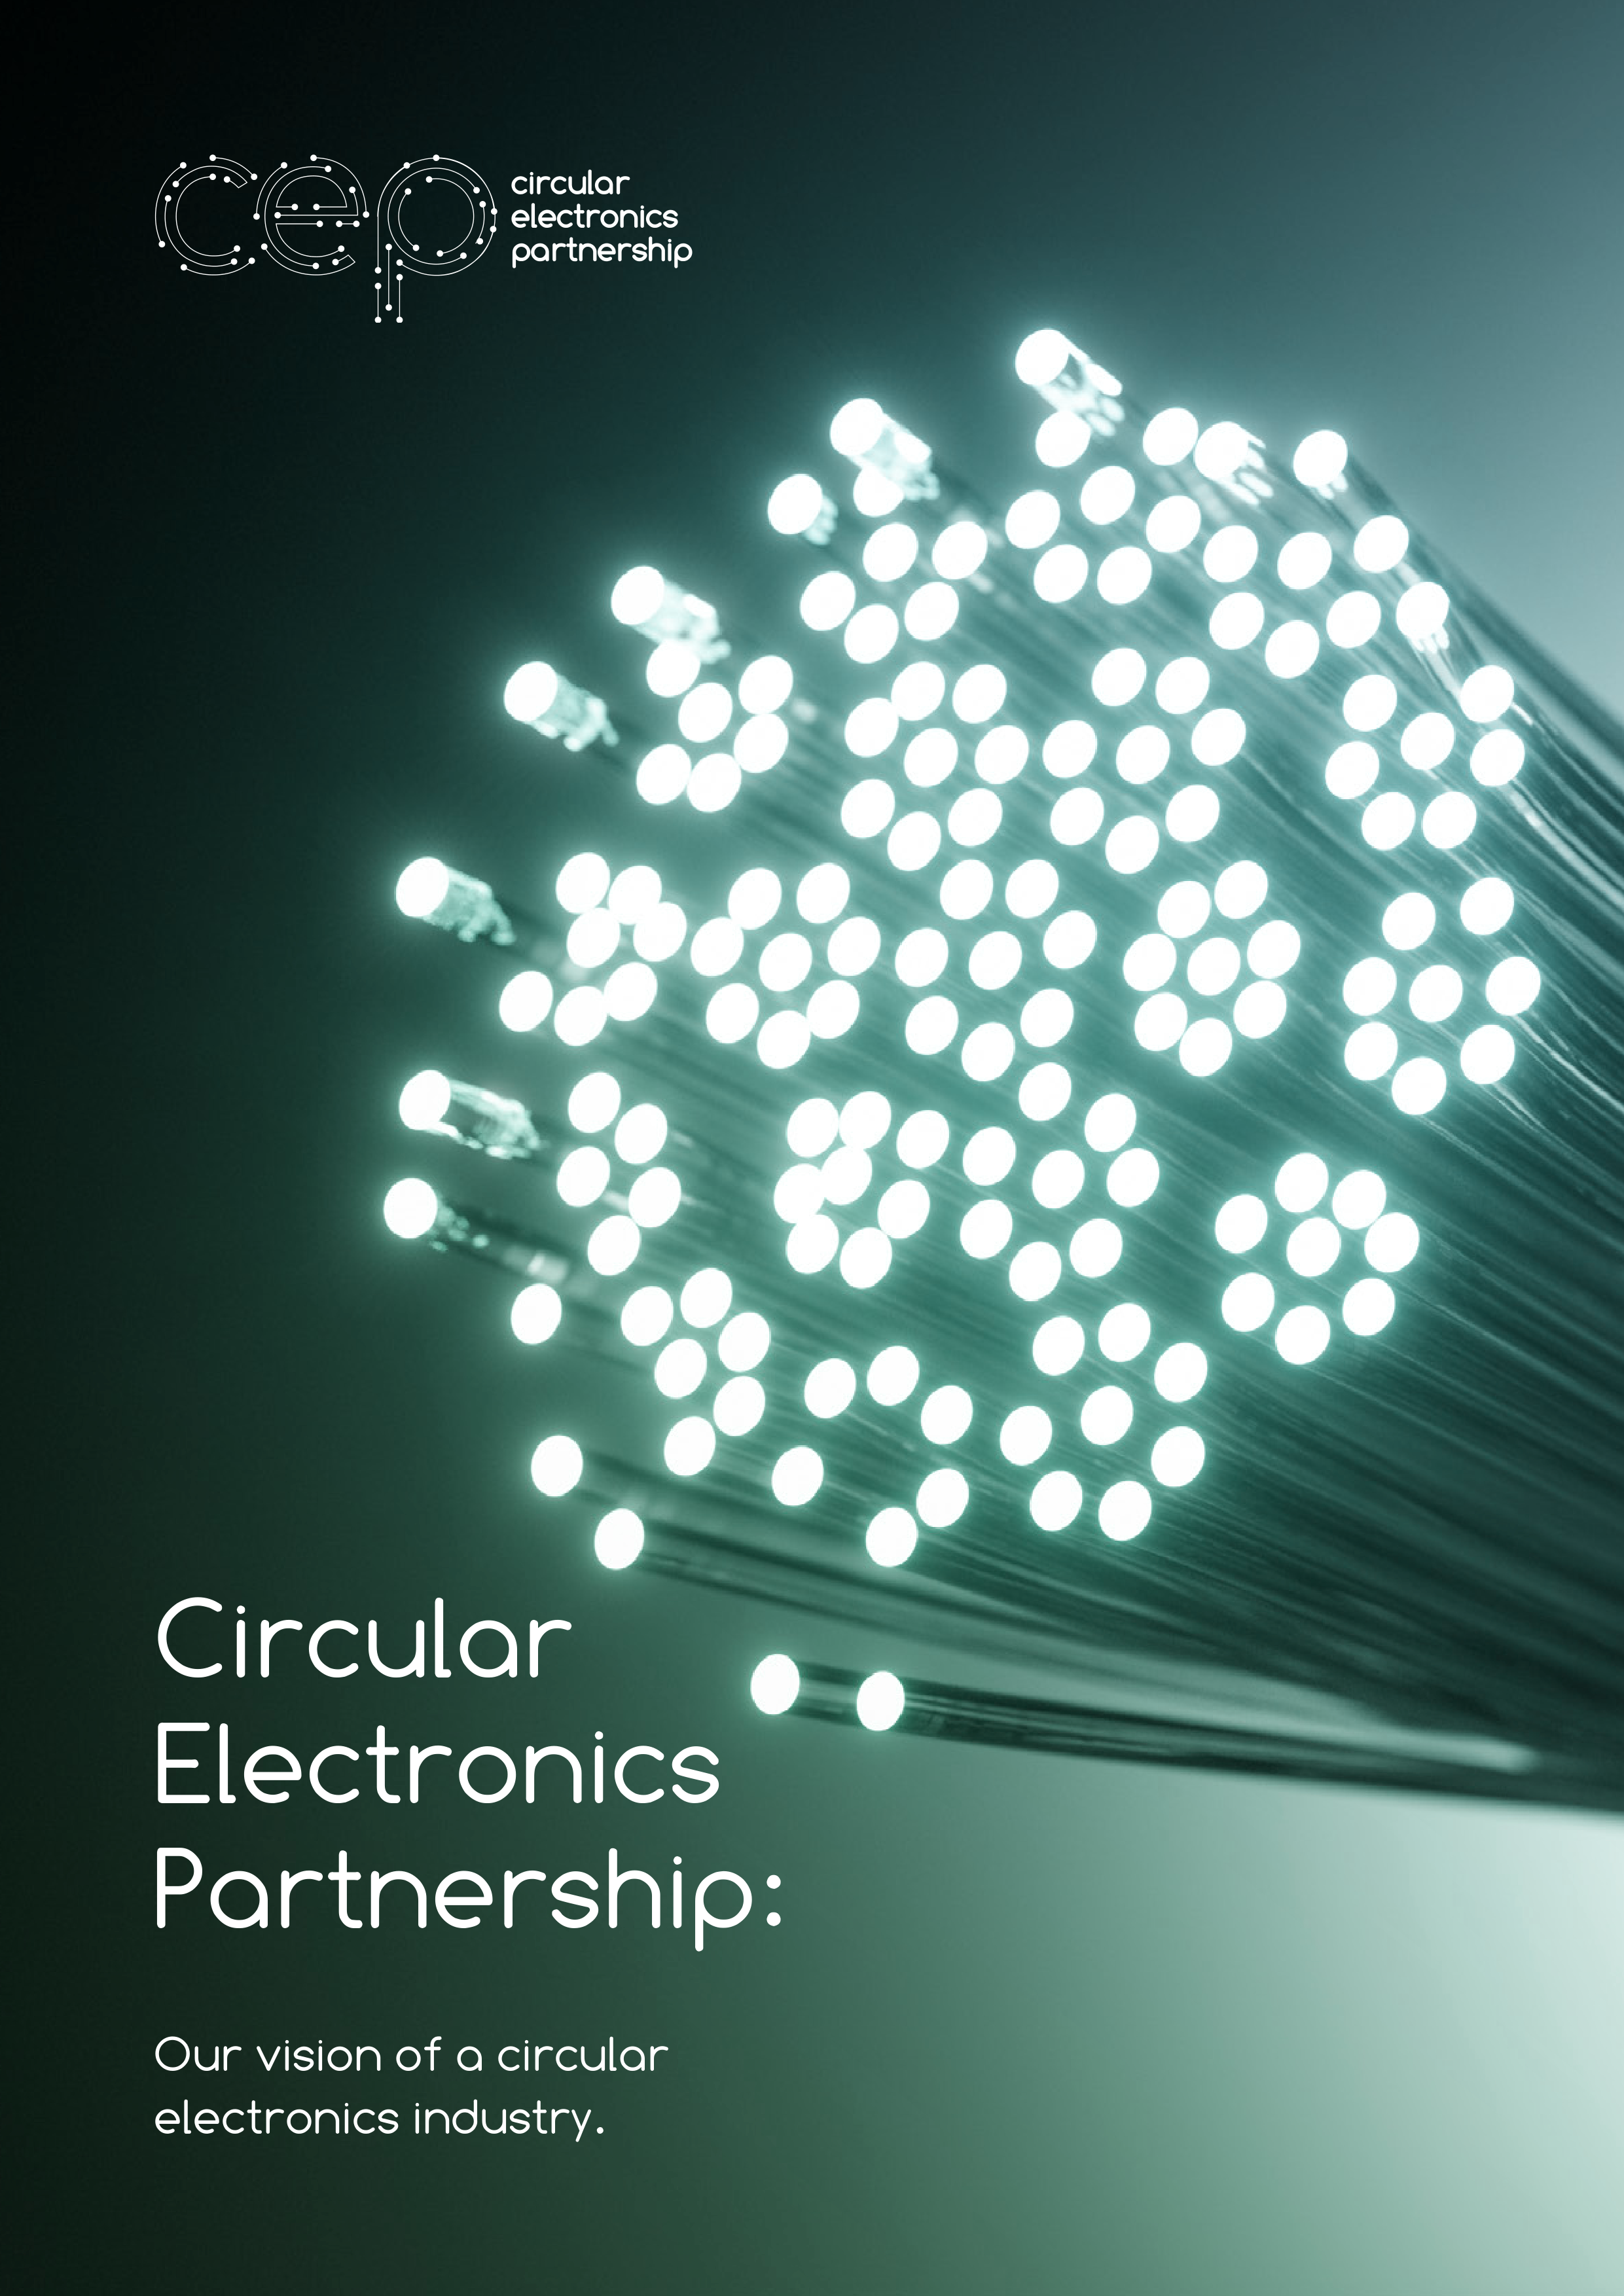 Circular Electronics Partnership: Our vision of a circular electronics industry, March 2021